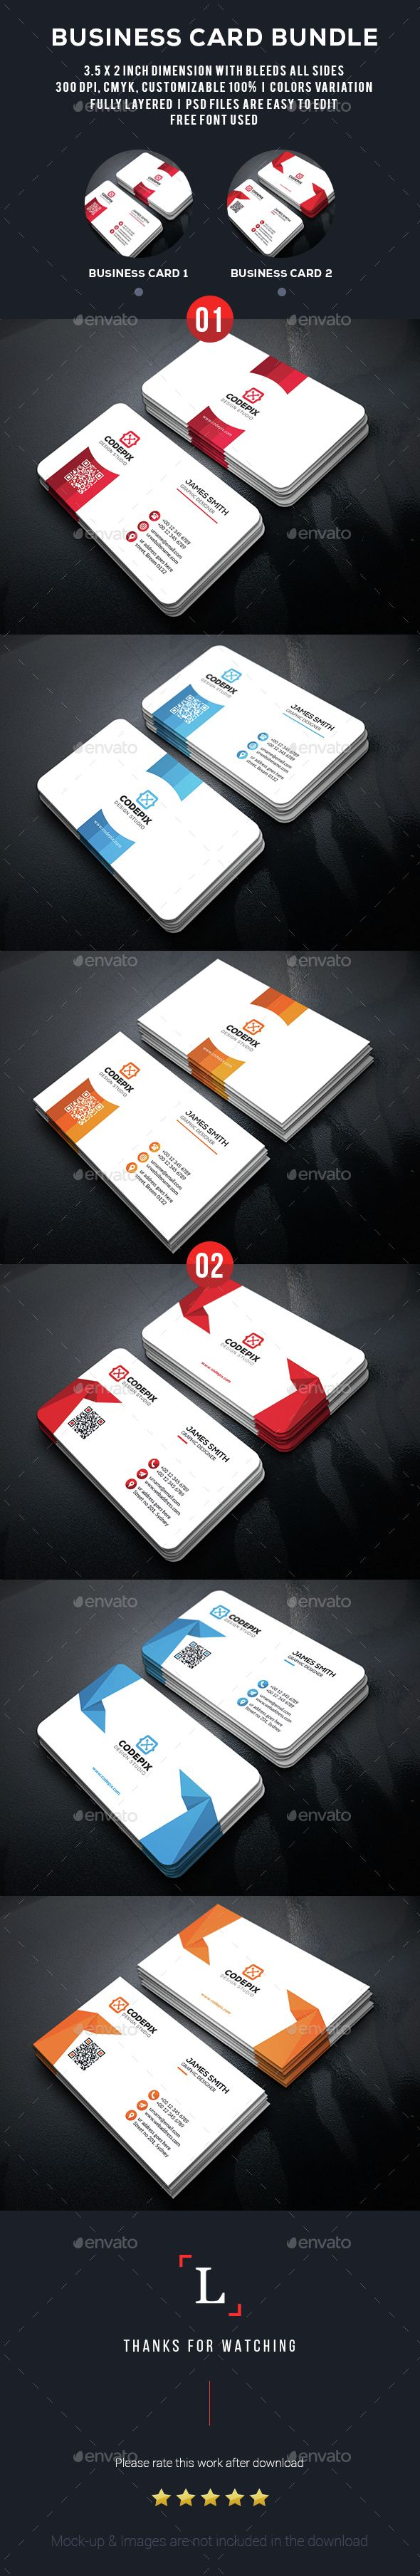 Clean Business Card Template PSD Bundle. Download here: http://graphicriver.net/item/clean-business-card-bundle/15352642?ref=ksioks